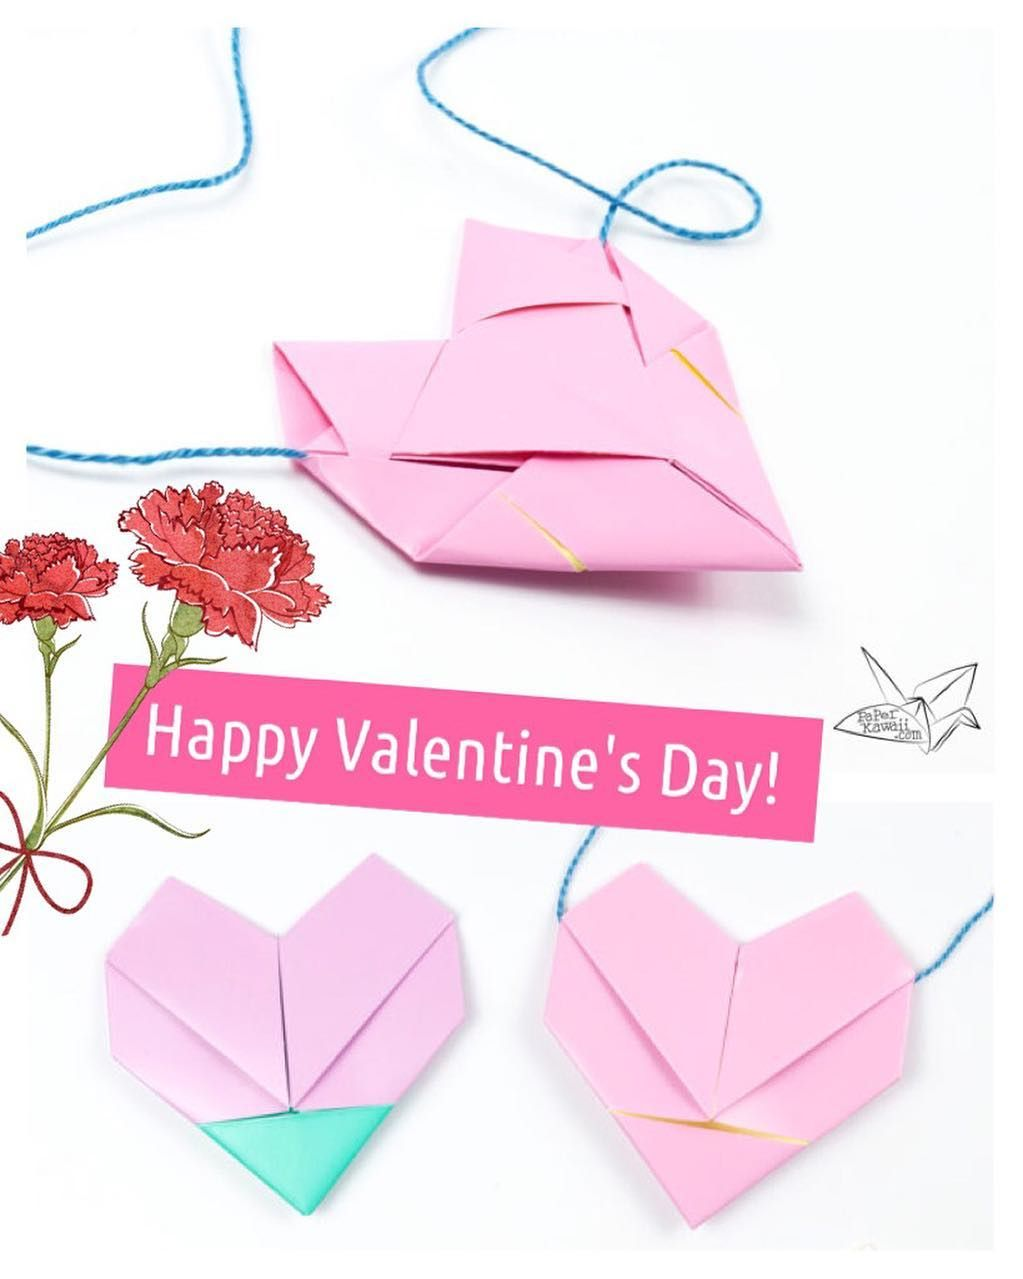 Happy valentines day origami necklace tutorial httpsyoutu origami instructions on how to fold the traditional origami lotus flower make lots of pretty origami flowers jeuxipadfo Image collections